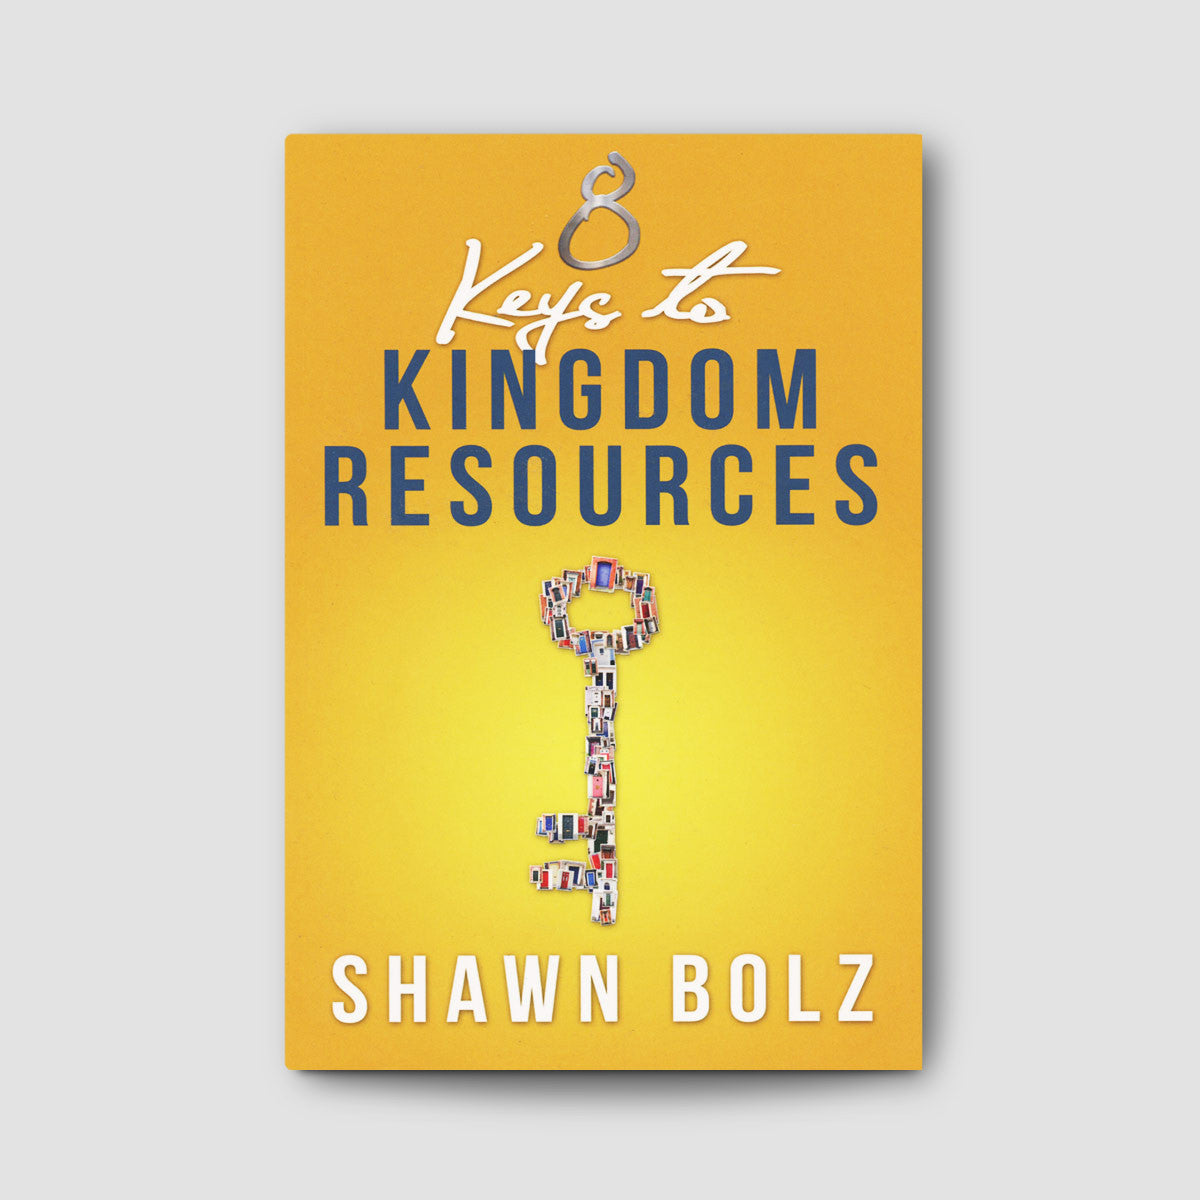 8 Keys to Kingdom Resources